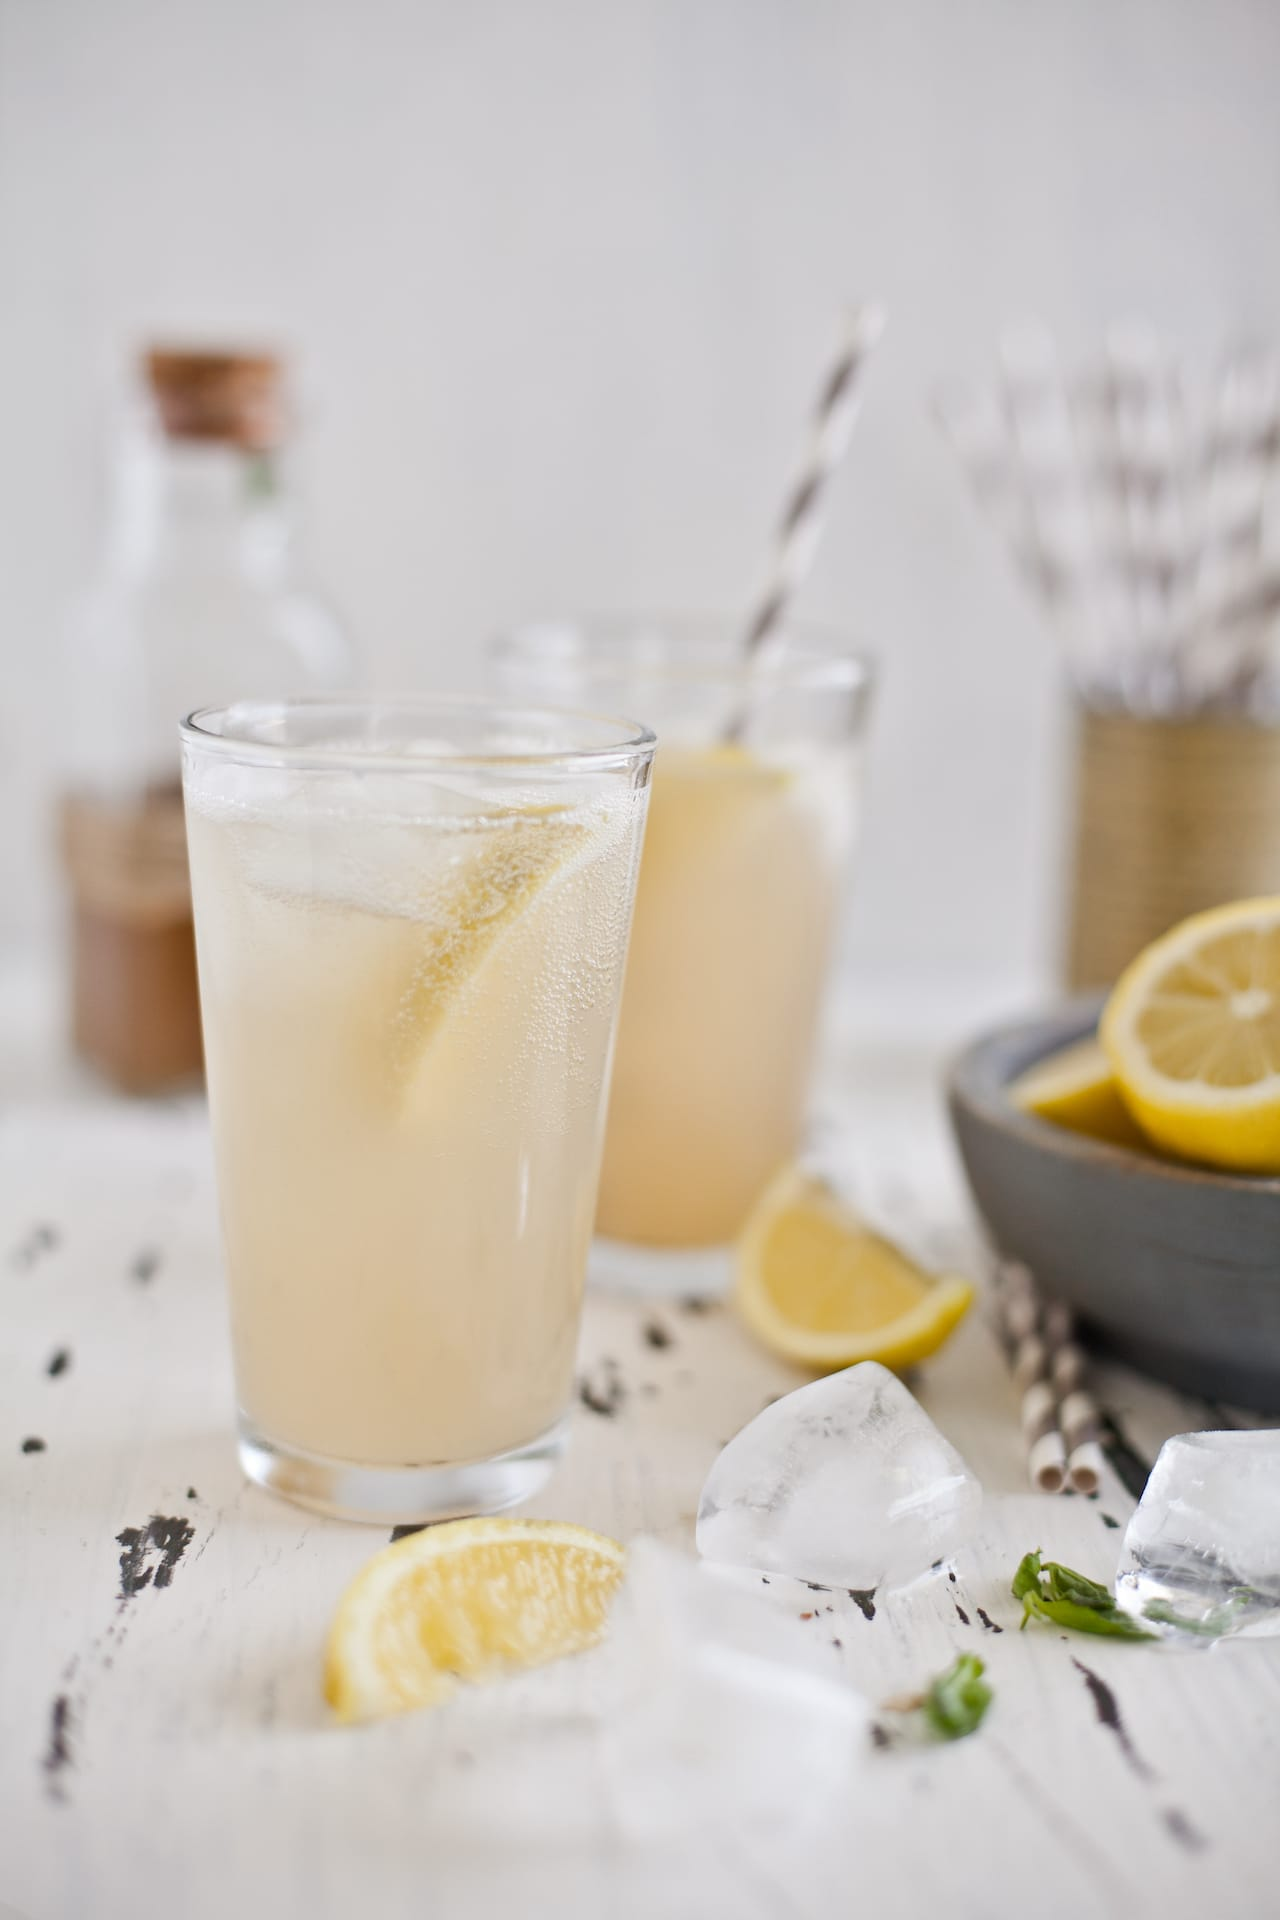 Ginger Lemongrass Basil Spritzer | Playful Cooking